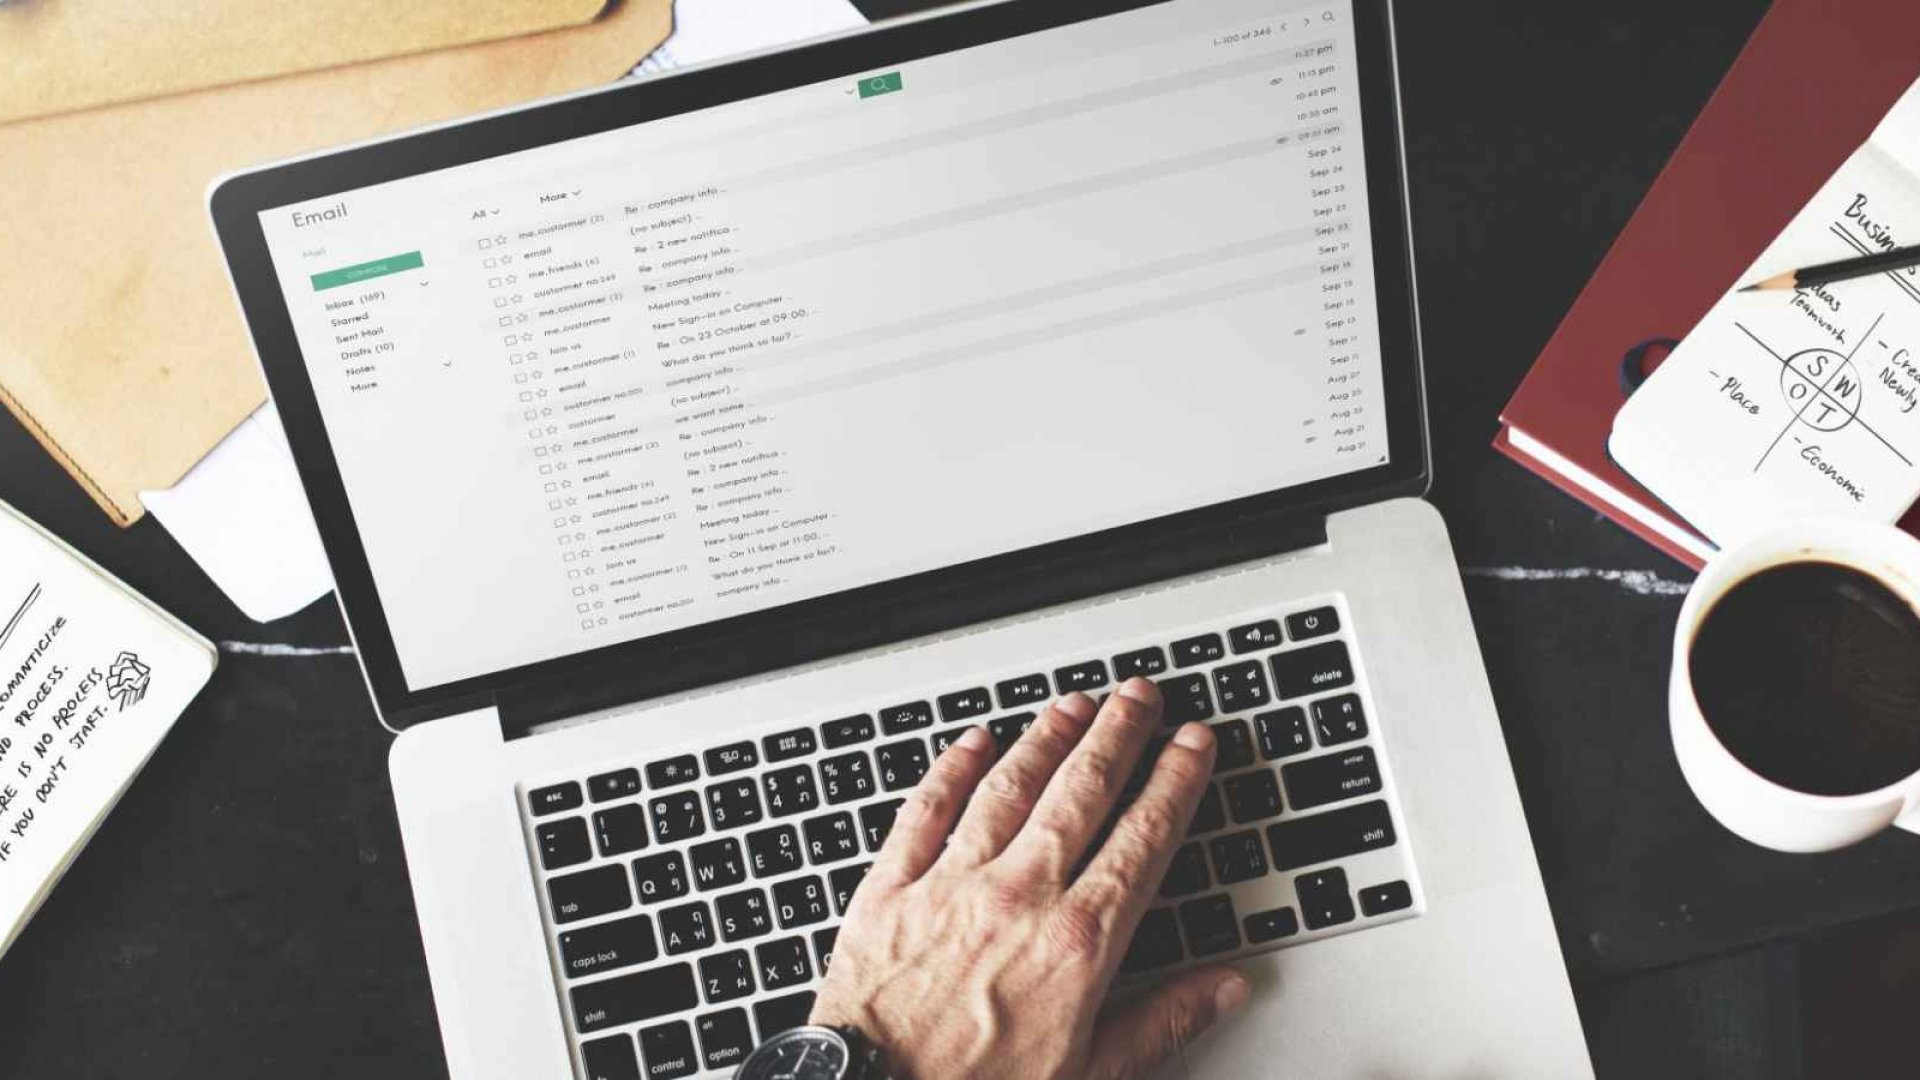 5 Easy But Highly Effective Ways To Improve The Emails You Send In 2017